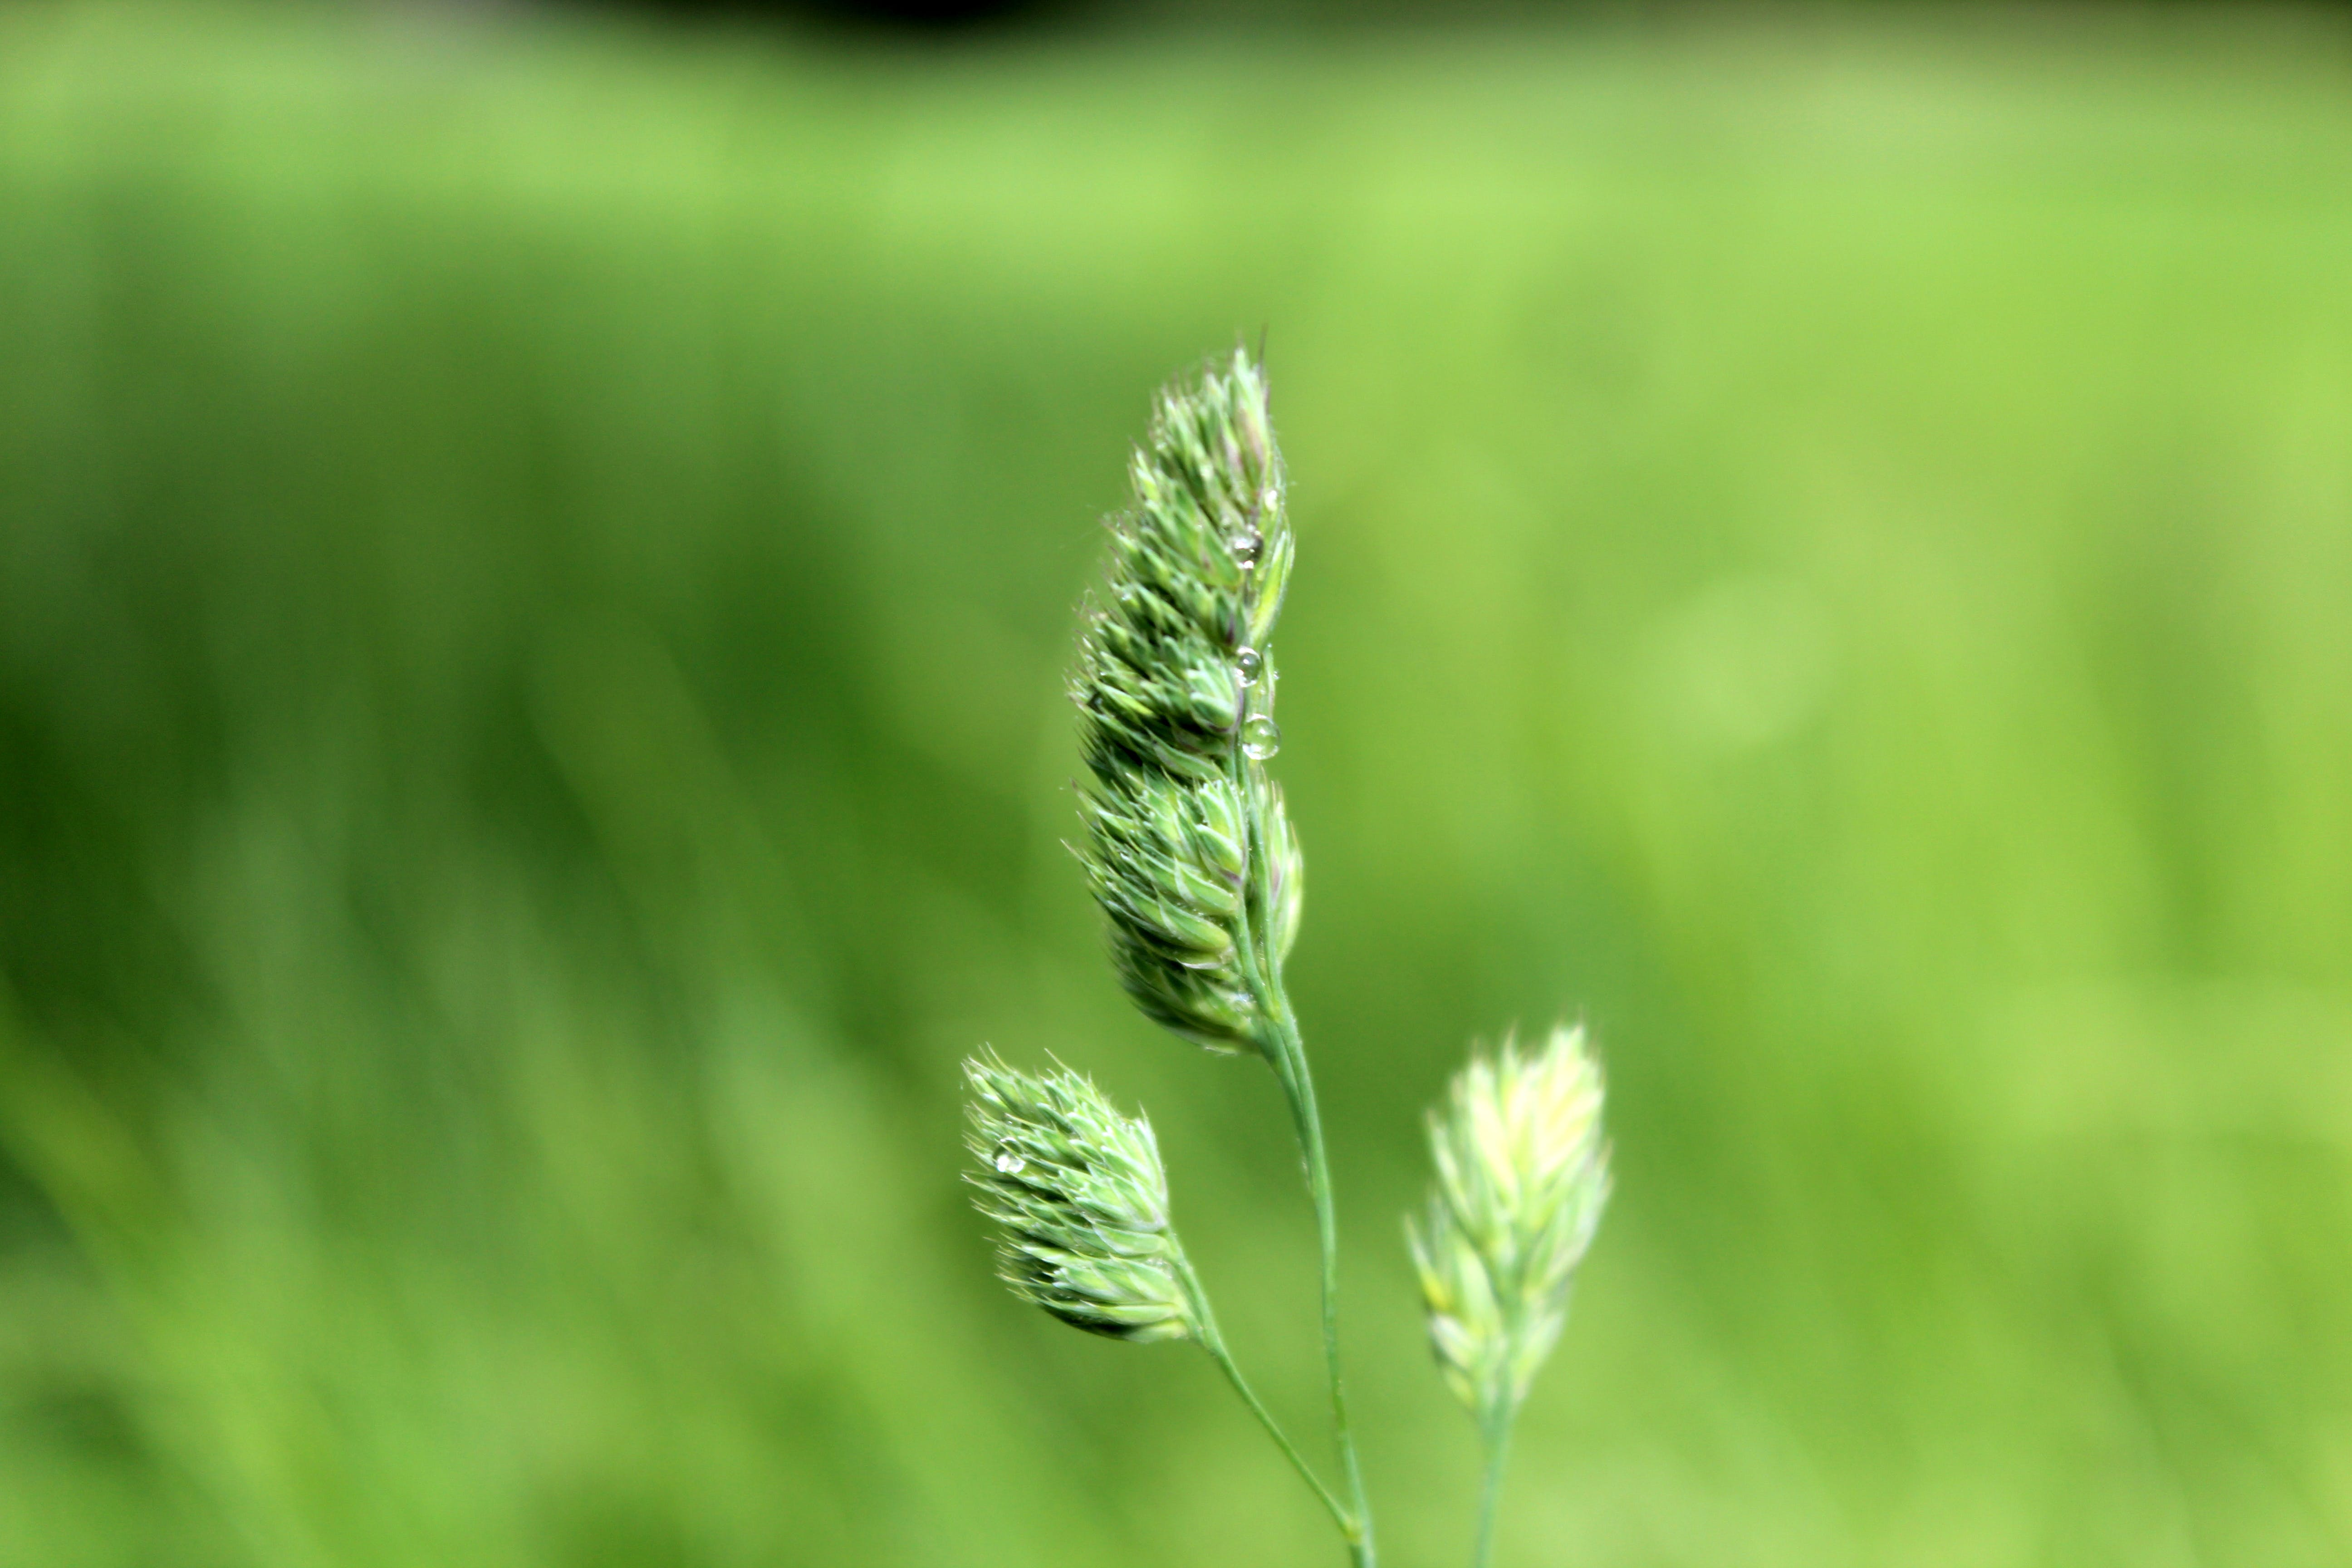 Free stock photo of grass, plant, seed heads